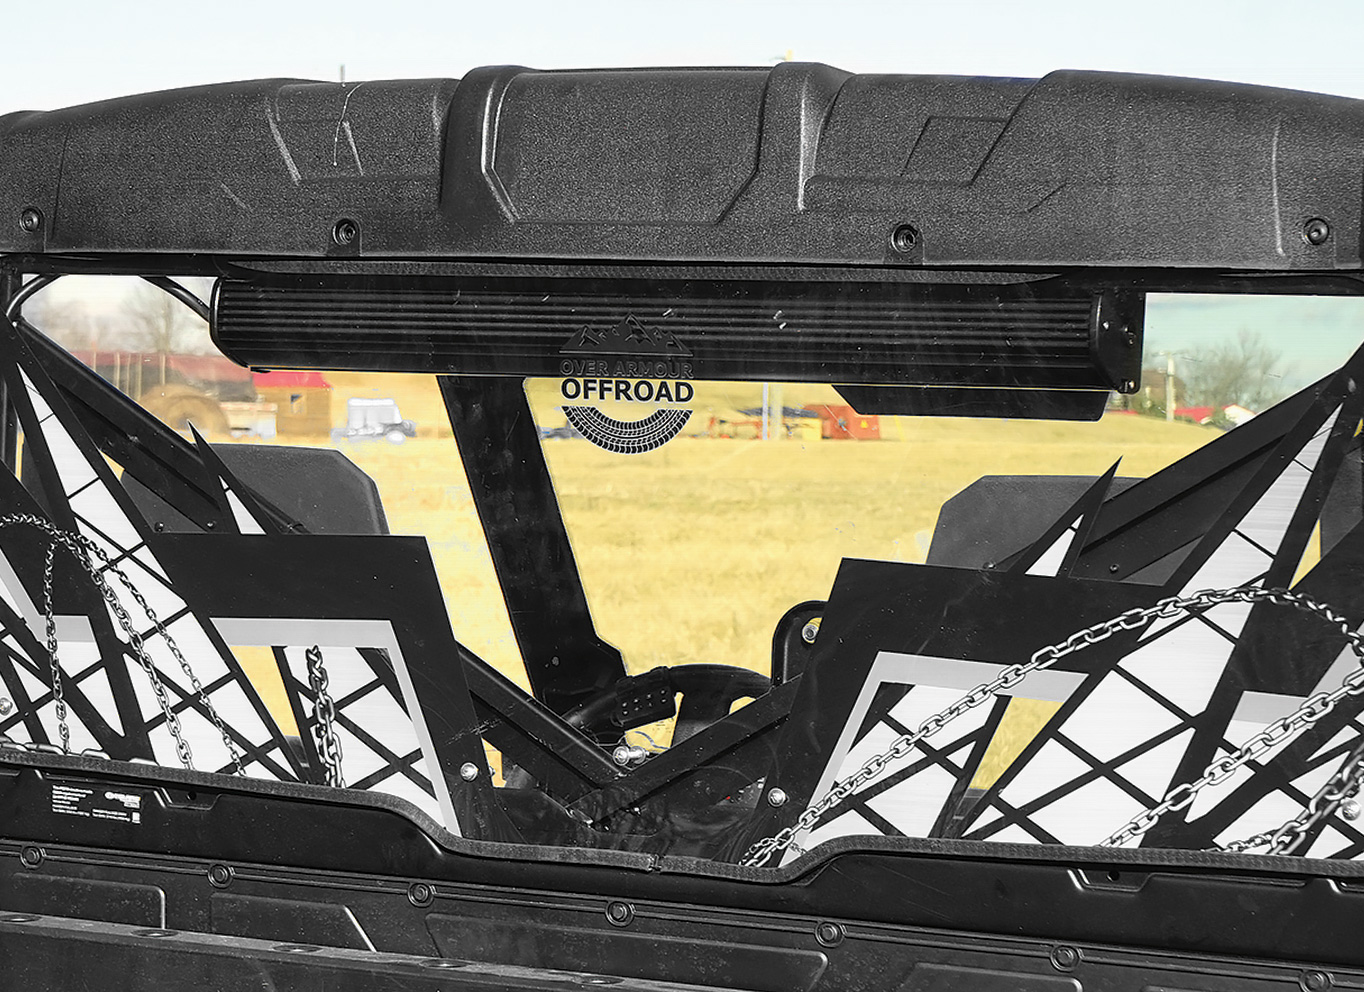 Over Armour Offroad - PRINTED AND CLEAR HARD-COATED REAR PANELS